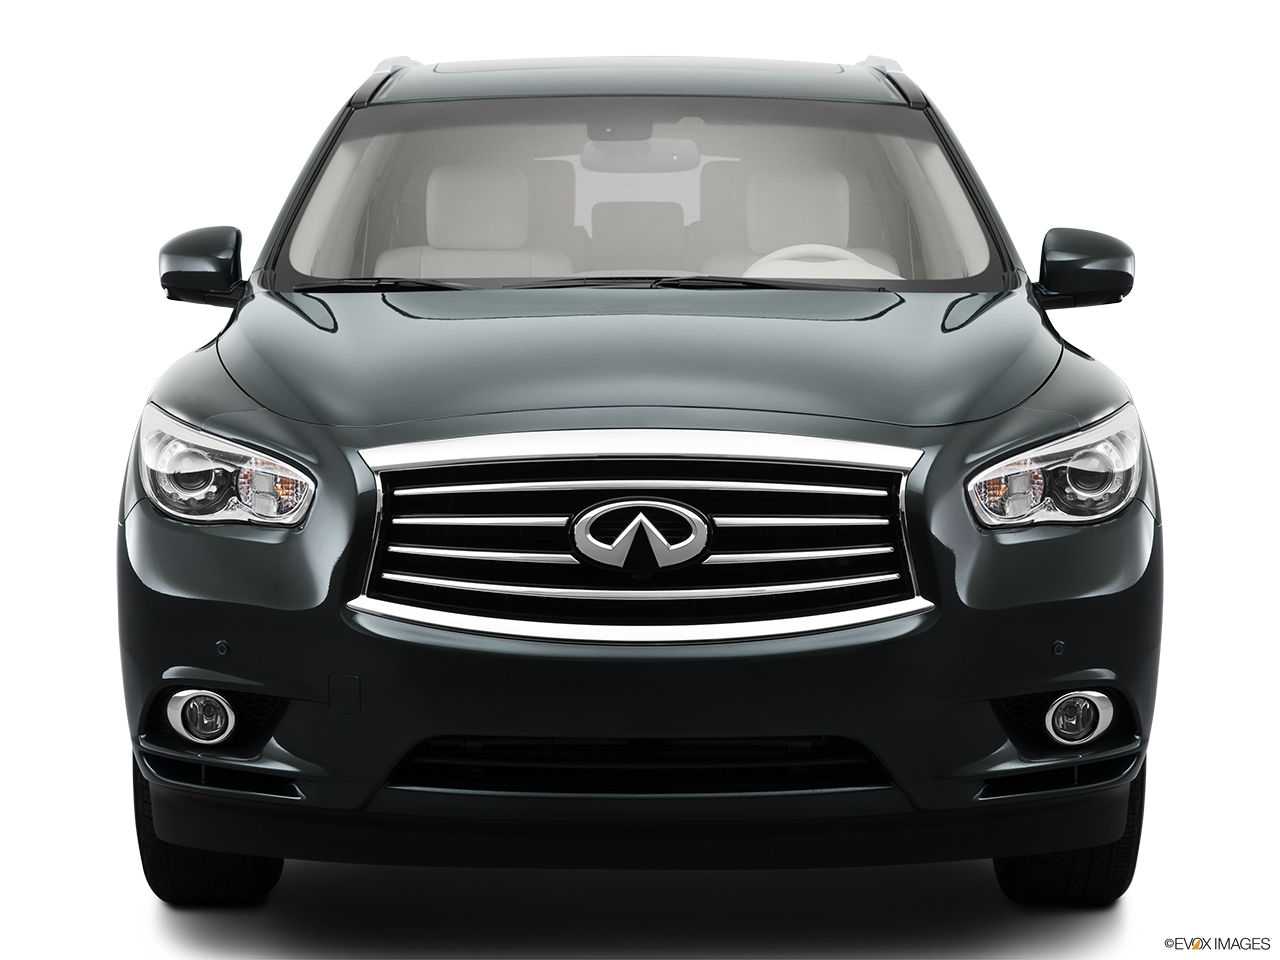 2013 Infiniti JX JX35 Low/wide front.